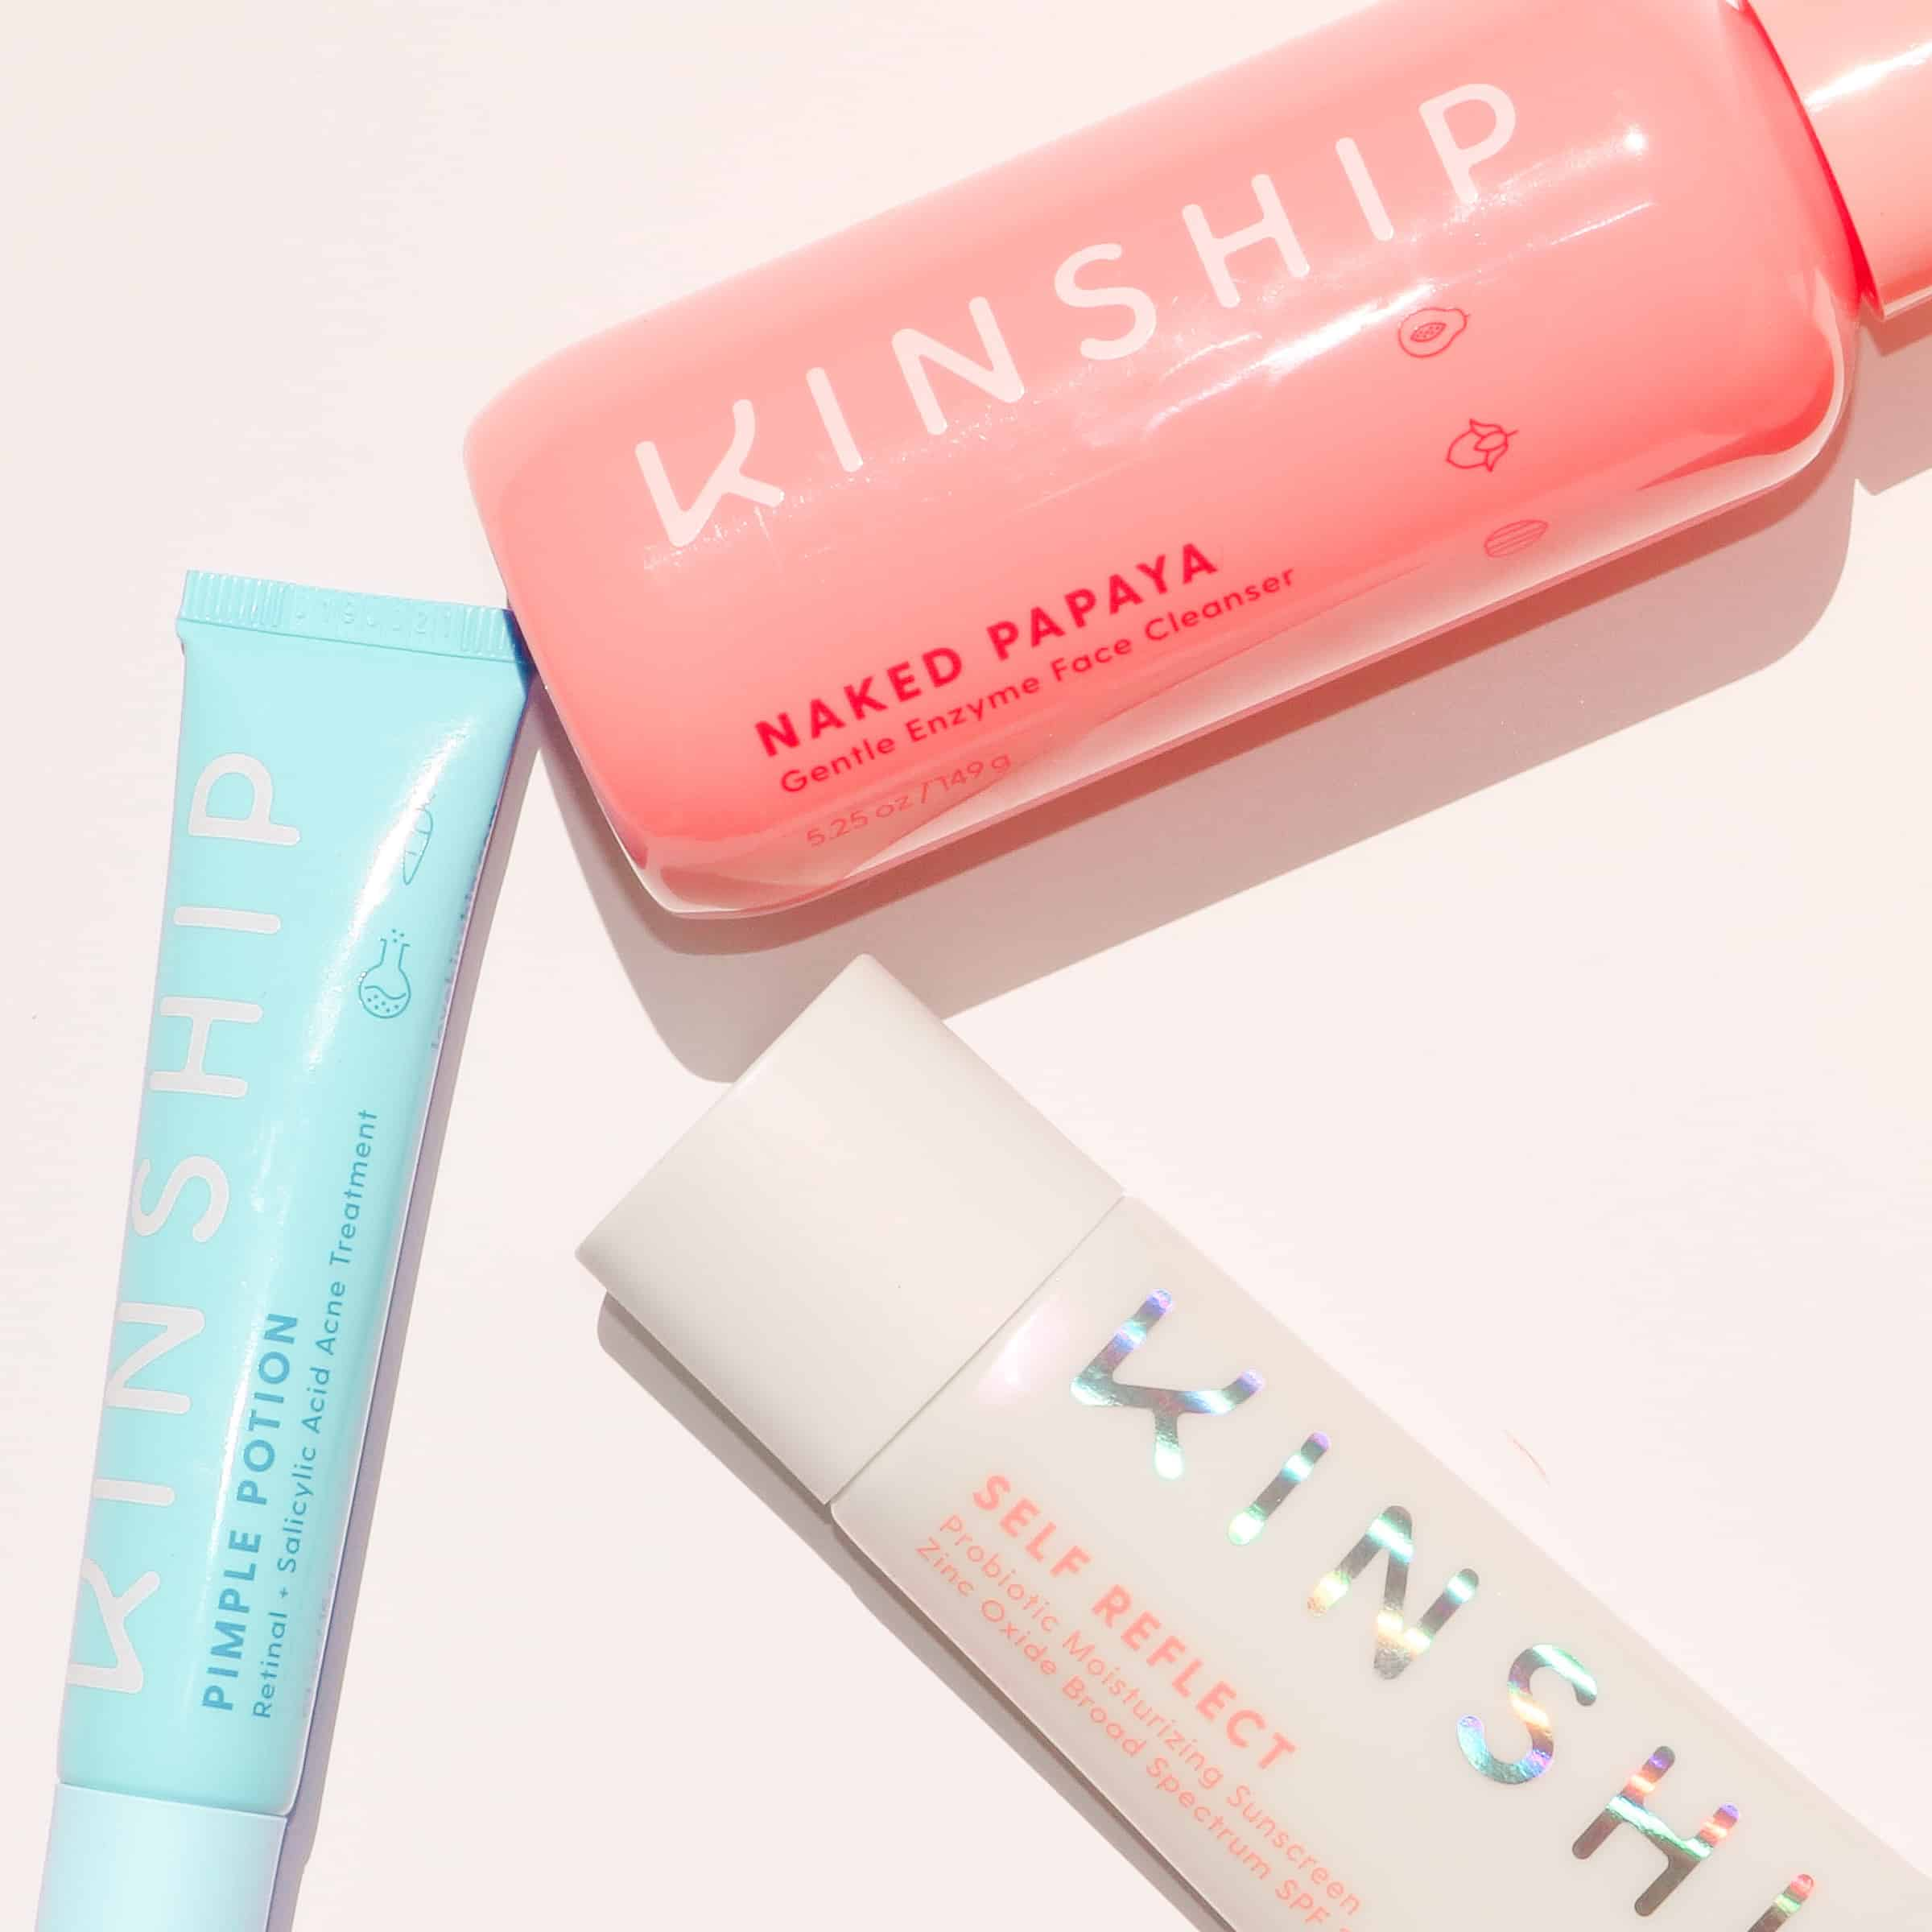 love kinship flatlay with their papaya enzyme cleanser, zit treatment and self reflect spf 32